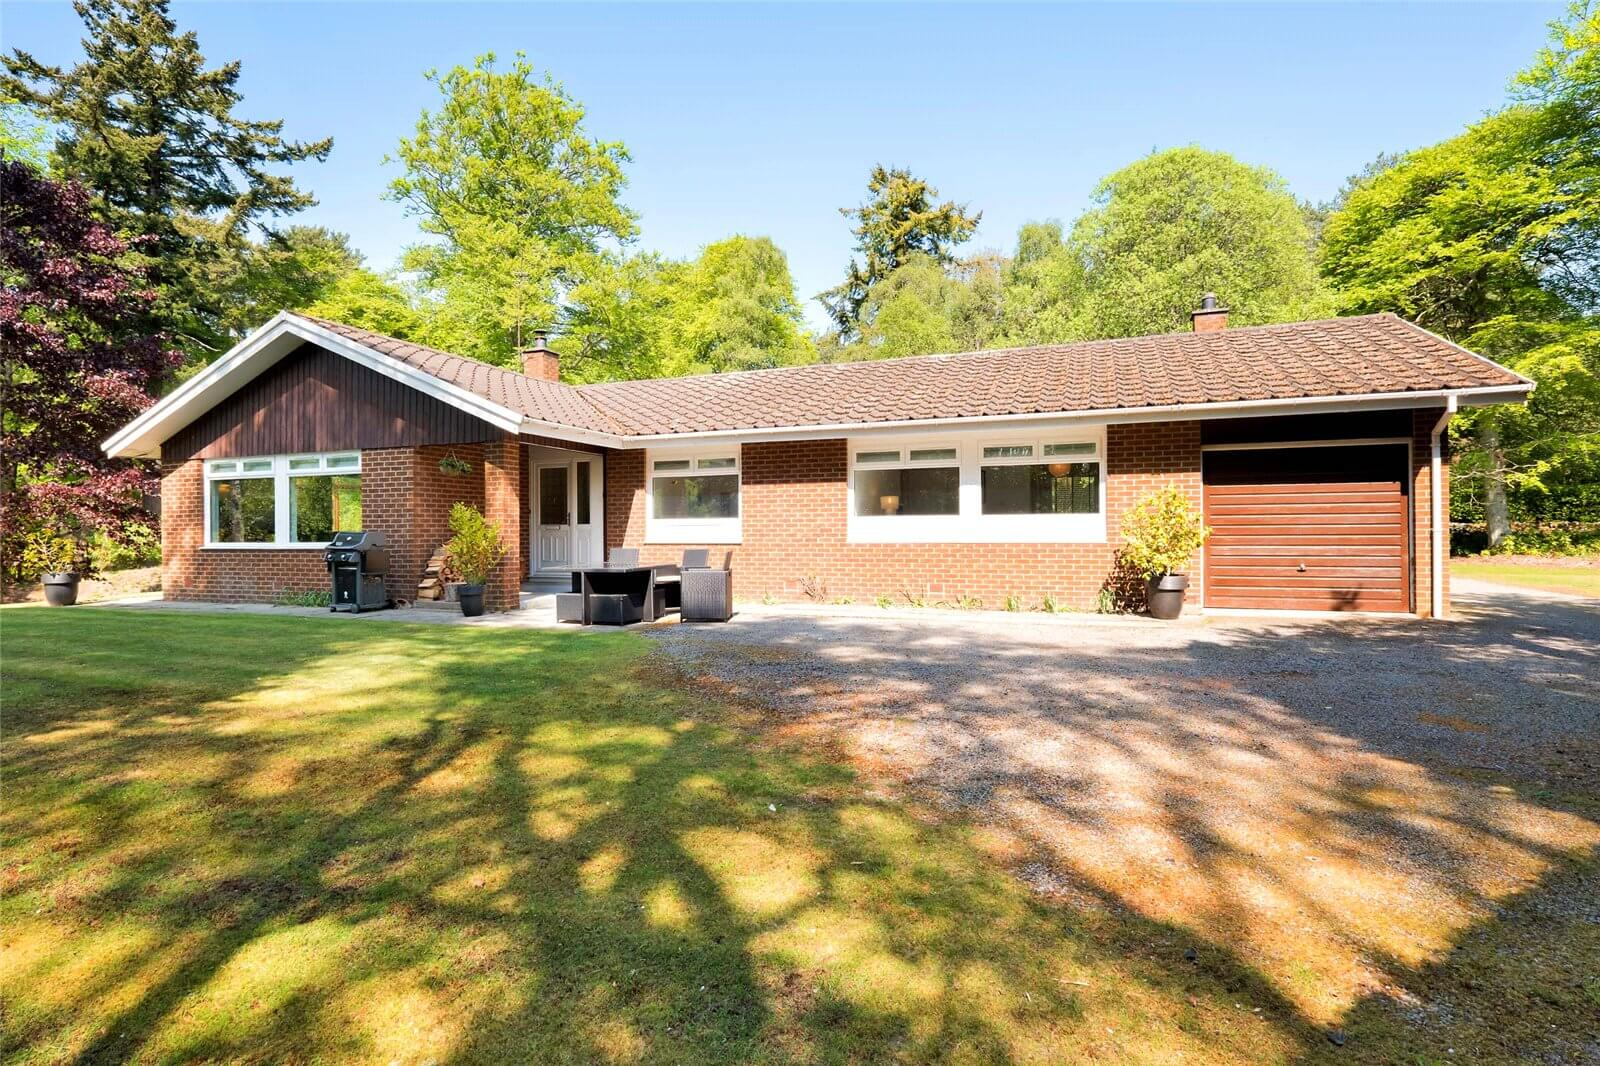 Our latest properties for sale and to let (31st August 2018)